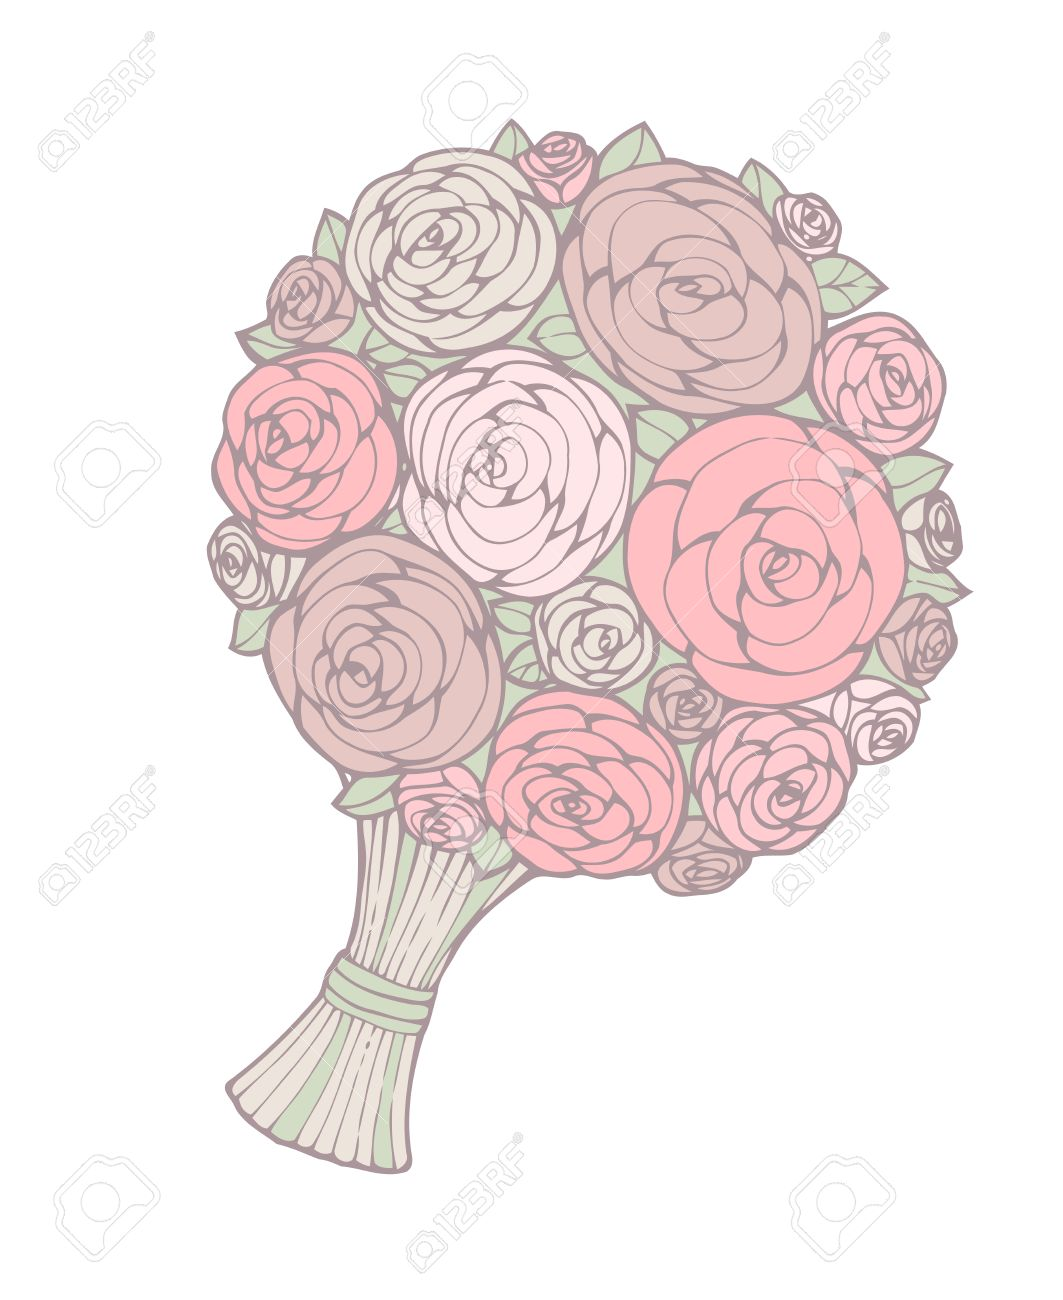 flower vase sign with Wedding Bouquet Drawing on Name 3Dpink Rose 7D likewise Fortnite Account All Season 2 Skins Mako Glider 46083864 additionally Watch as well Watch likewise Gerbera Daisies.